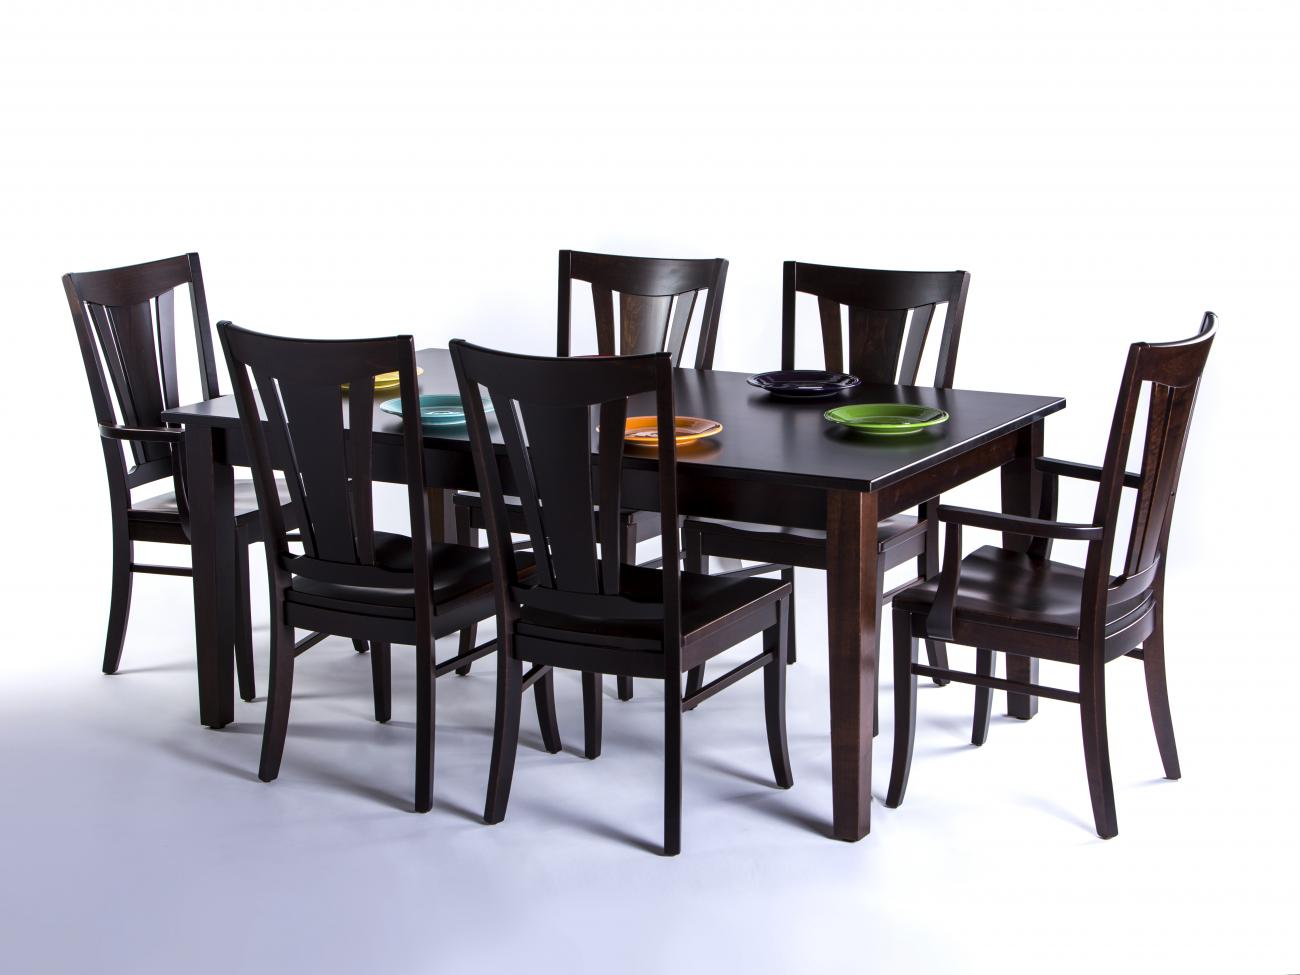 Classic Shaker Dining Table With Six Matching Chairs